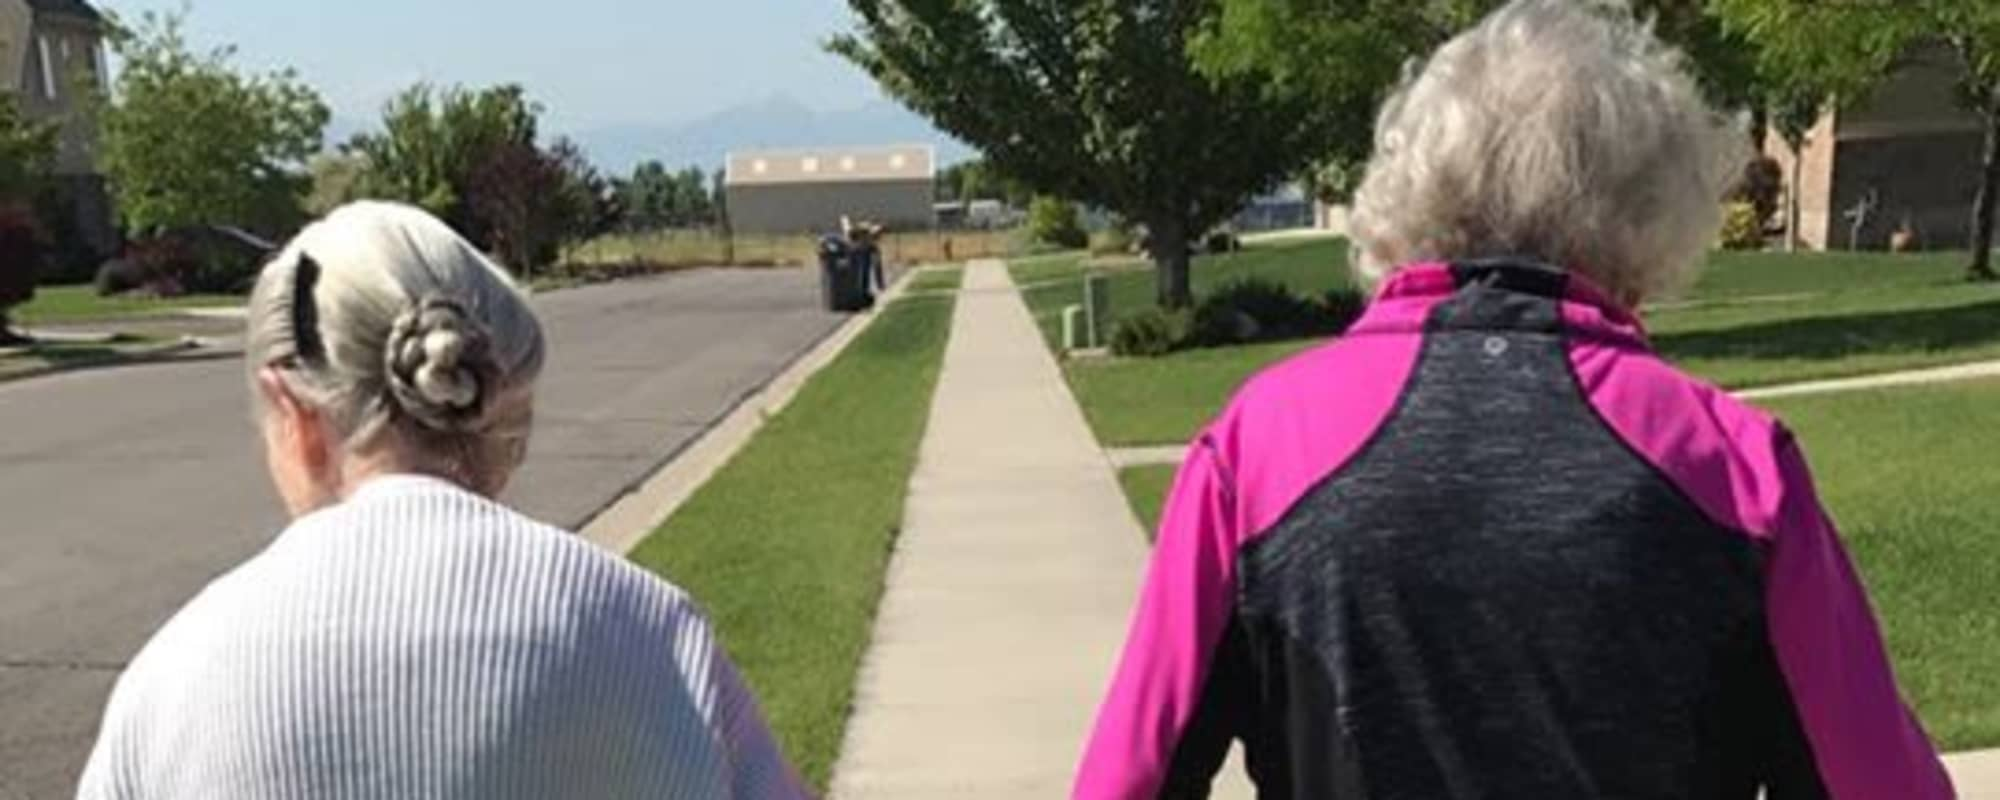 Seniors walking down sidewalk at Highland Glen in Highland, Utah